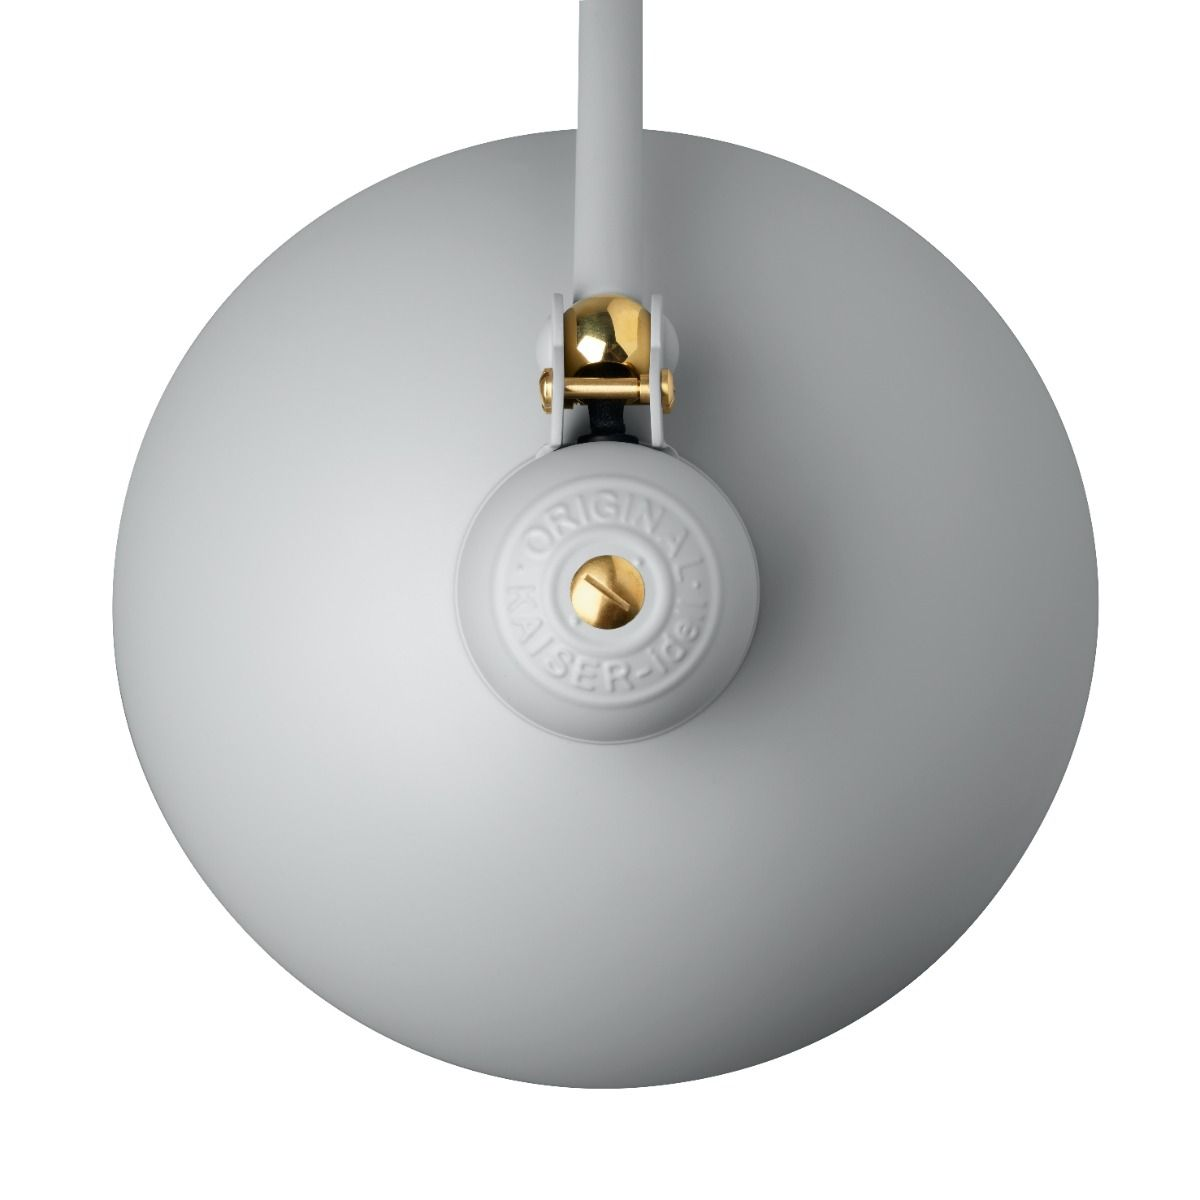 Kaiser Idell6631-T Luxus in brass, and easy grey top detail